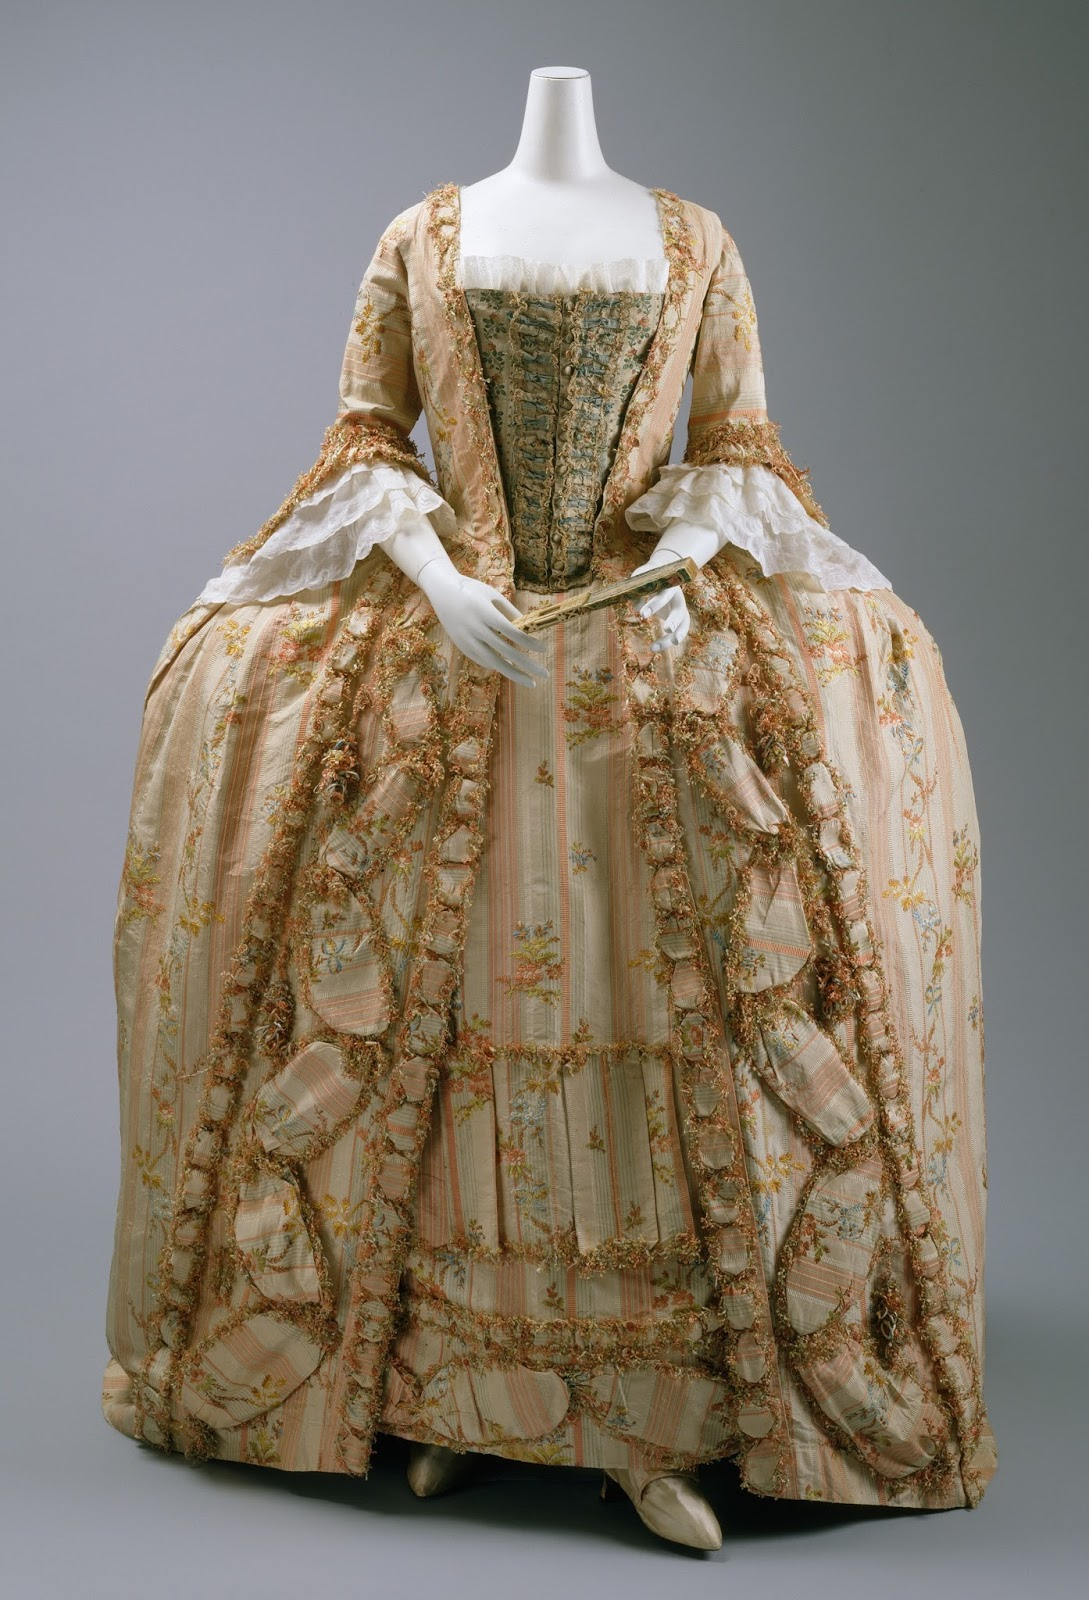 Two Nerdy History Girls  A 1770s Dress Worn by One of the